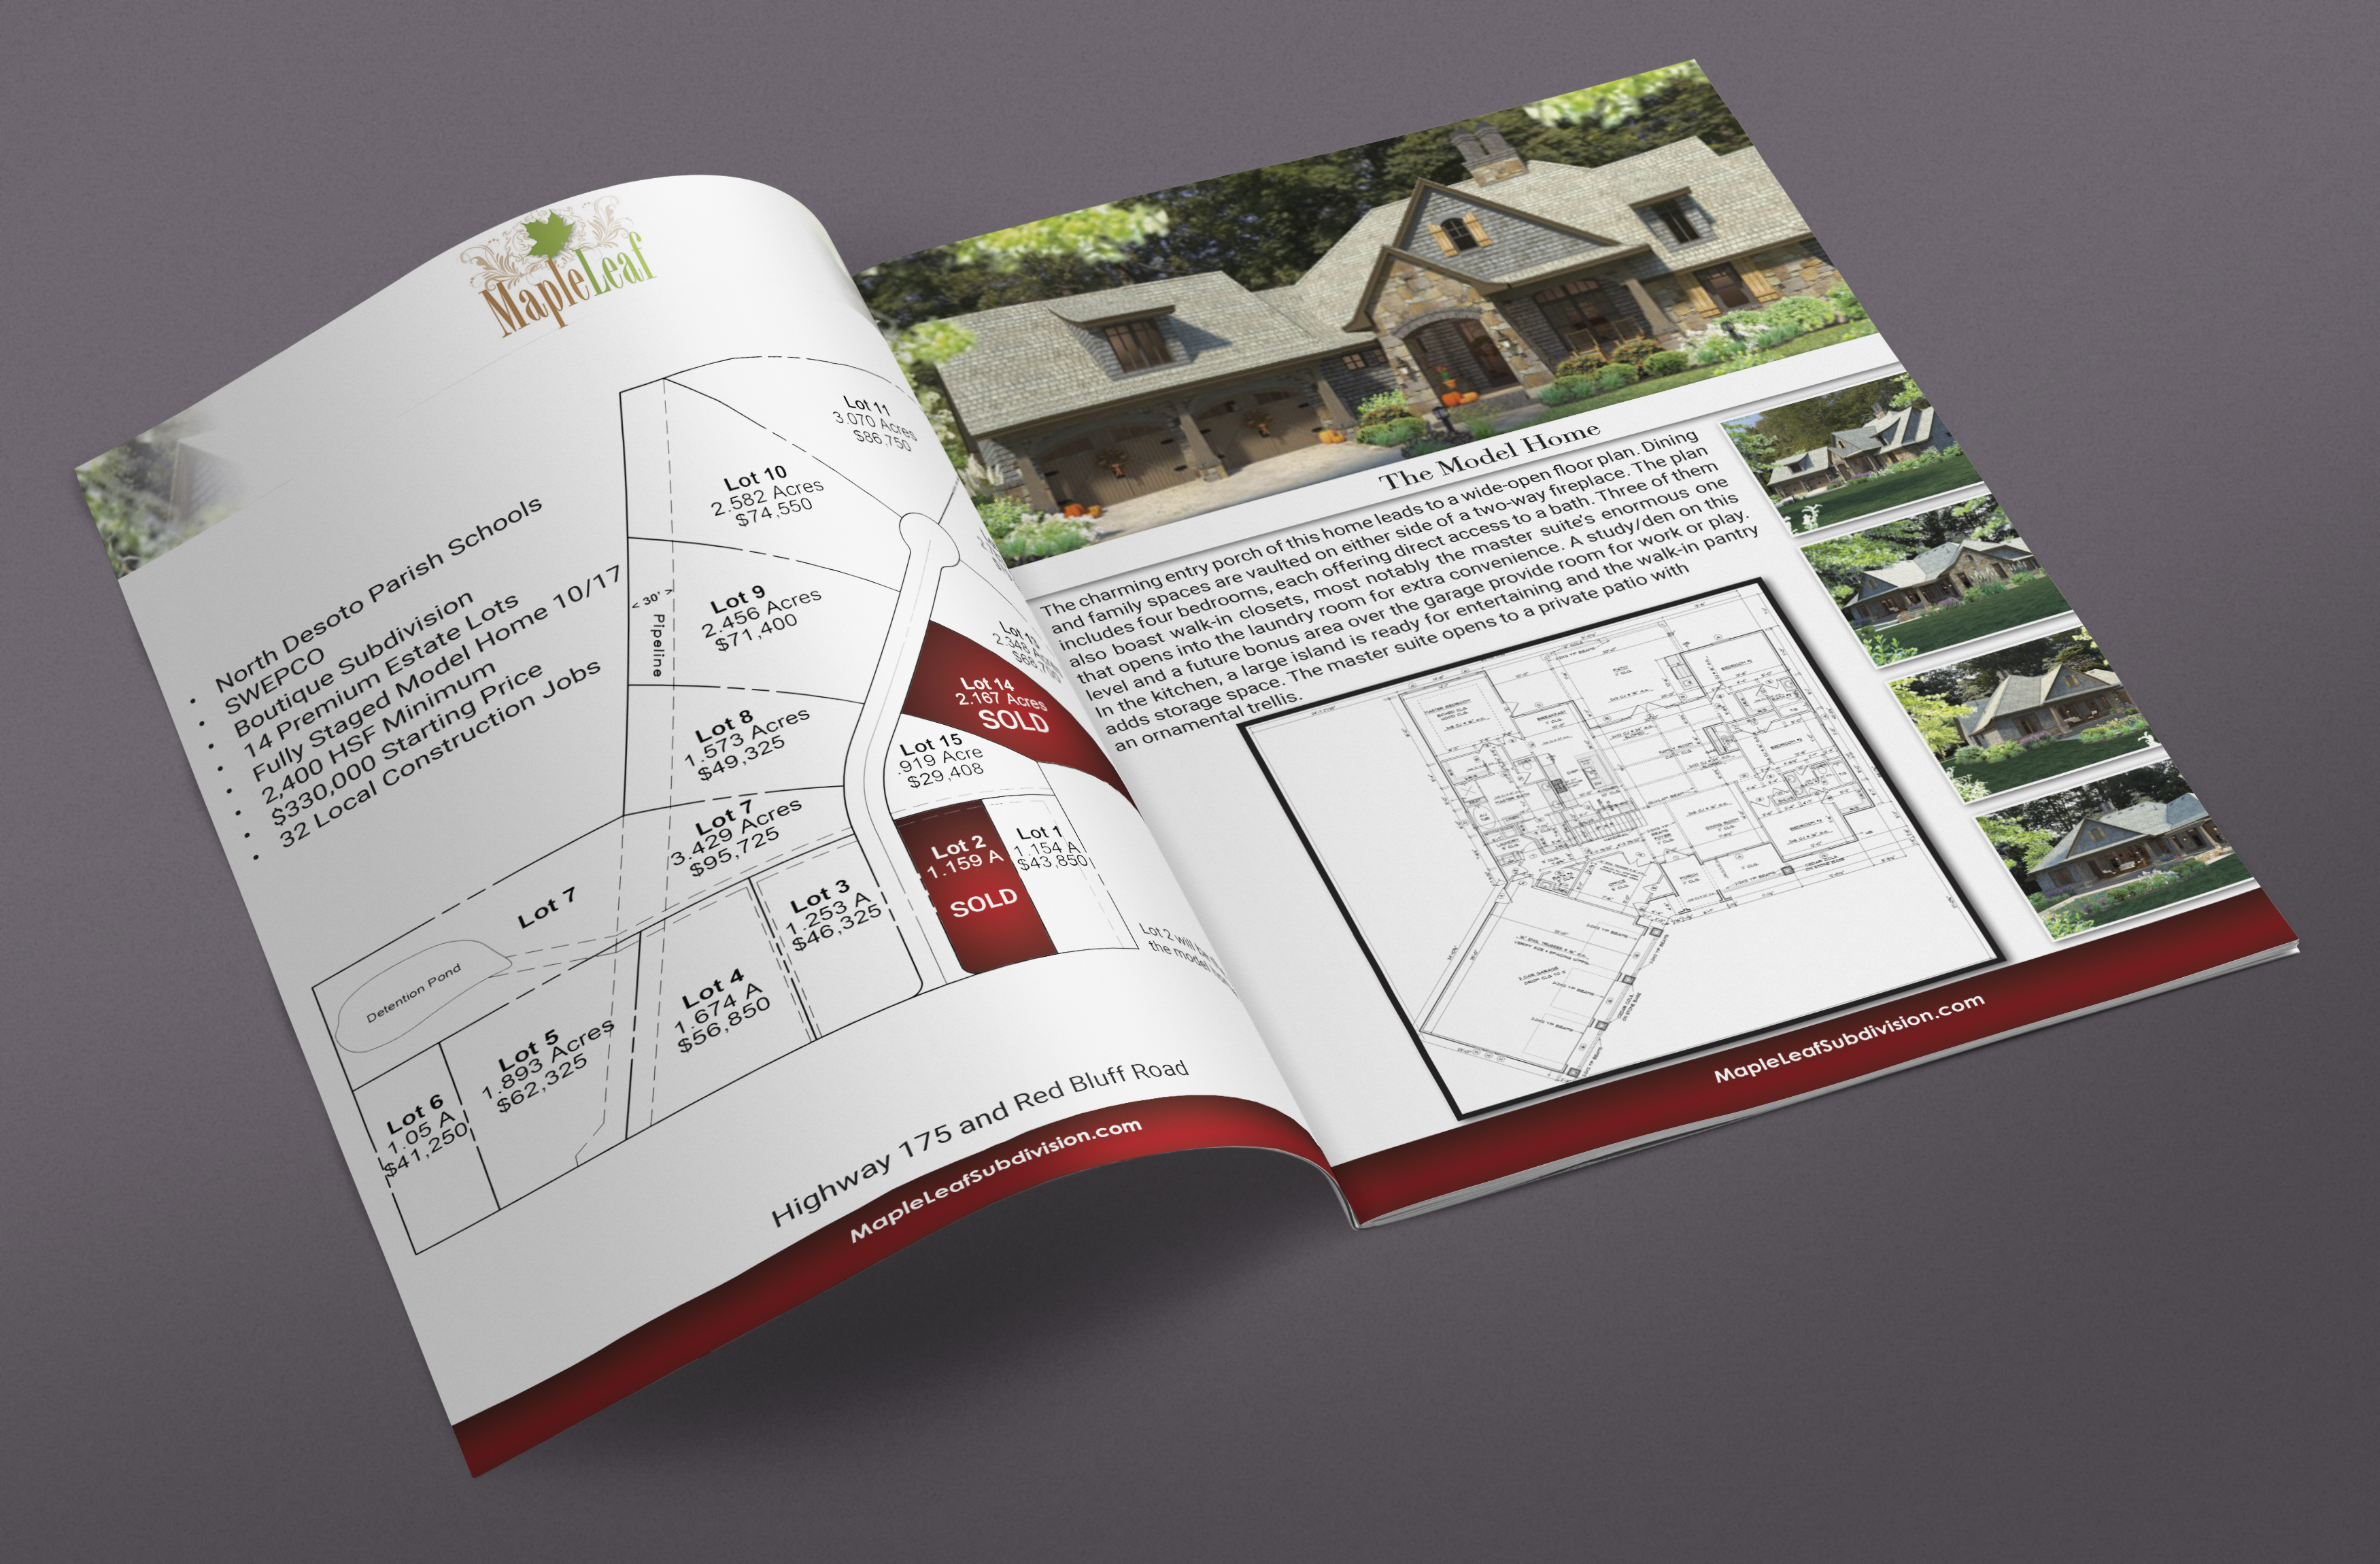 a photograph of the bi fold brochure created for the ground breaking ceremony of the maple leaf subdivision